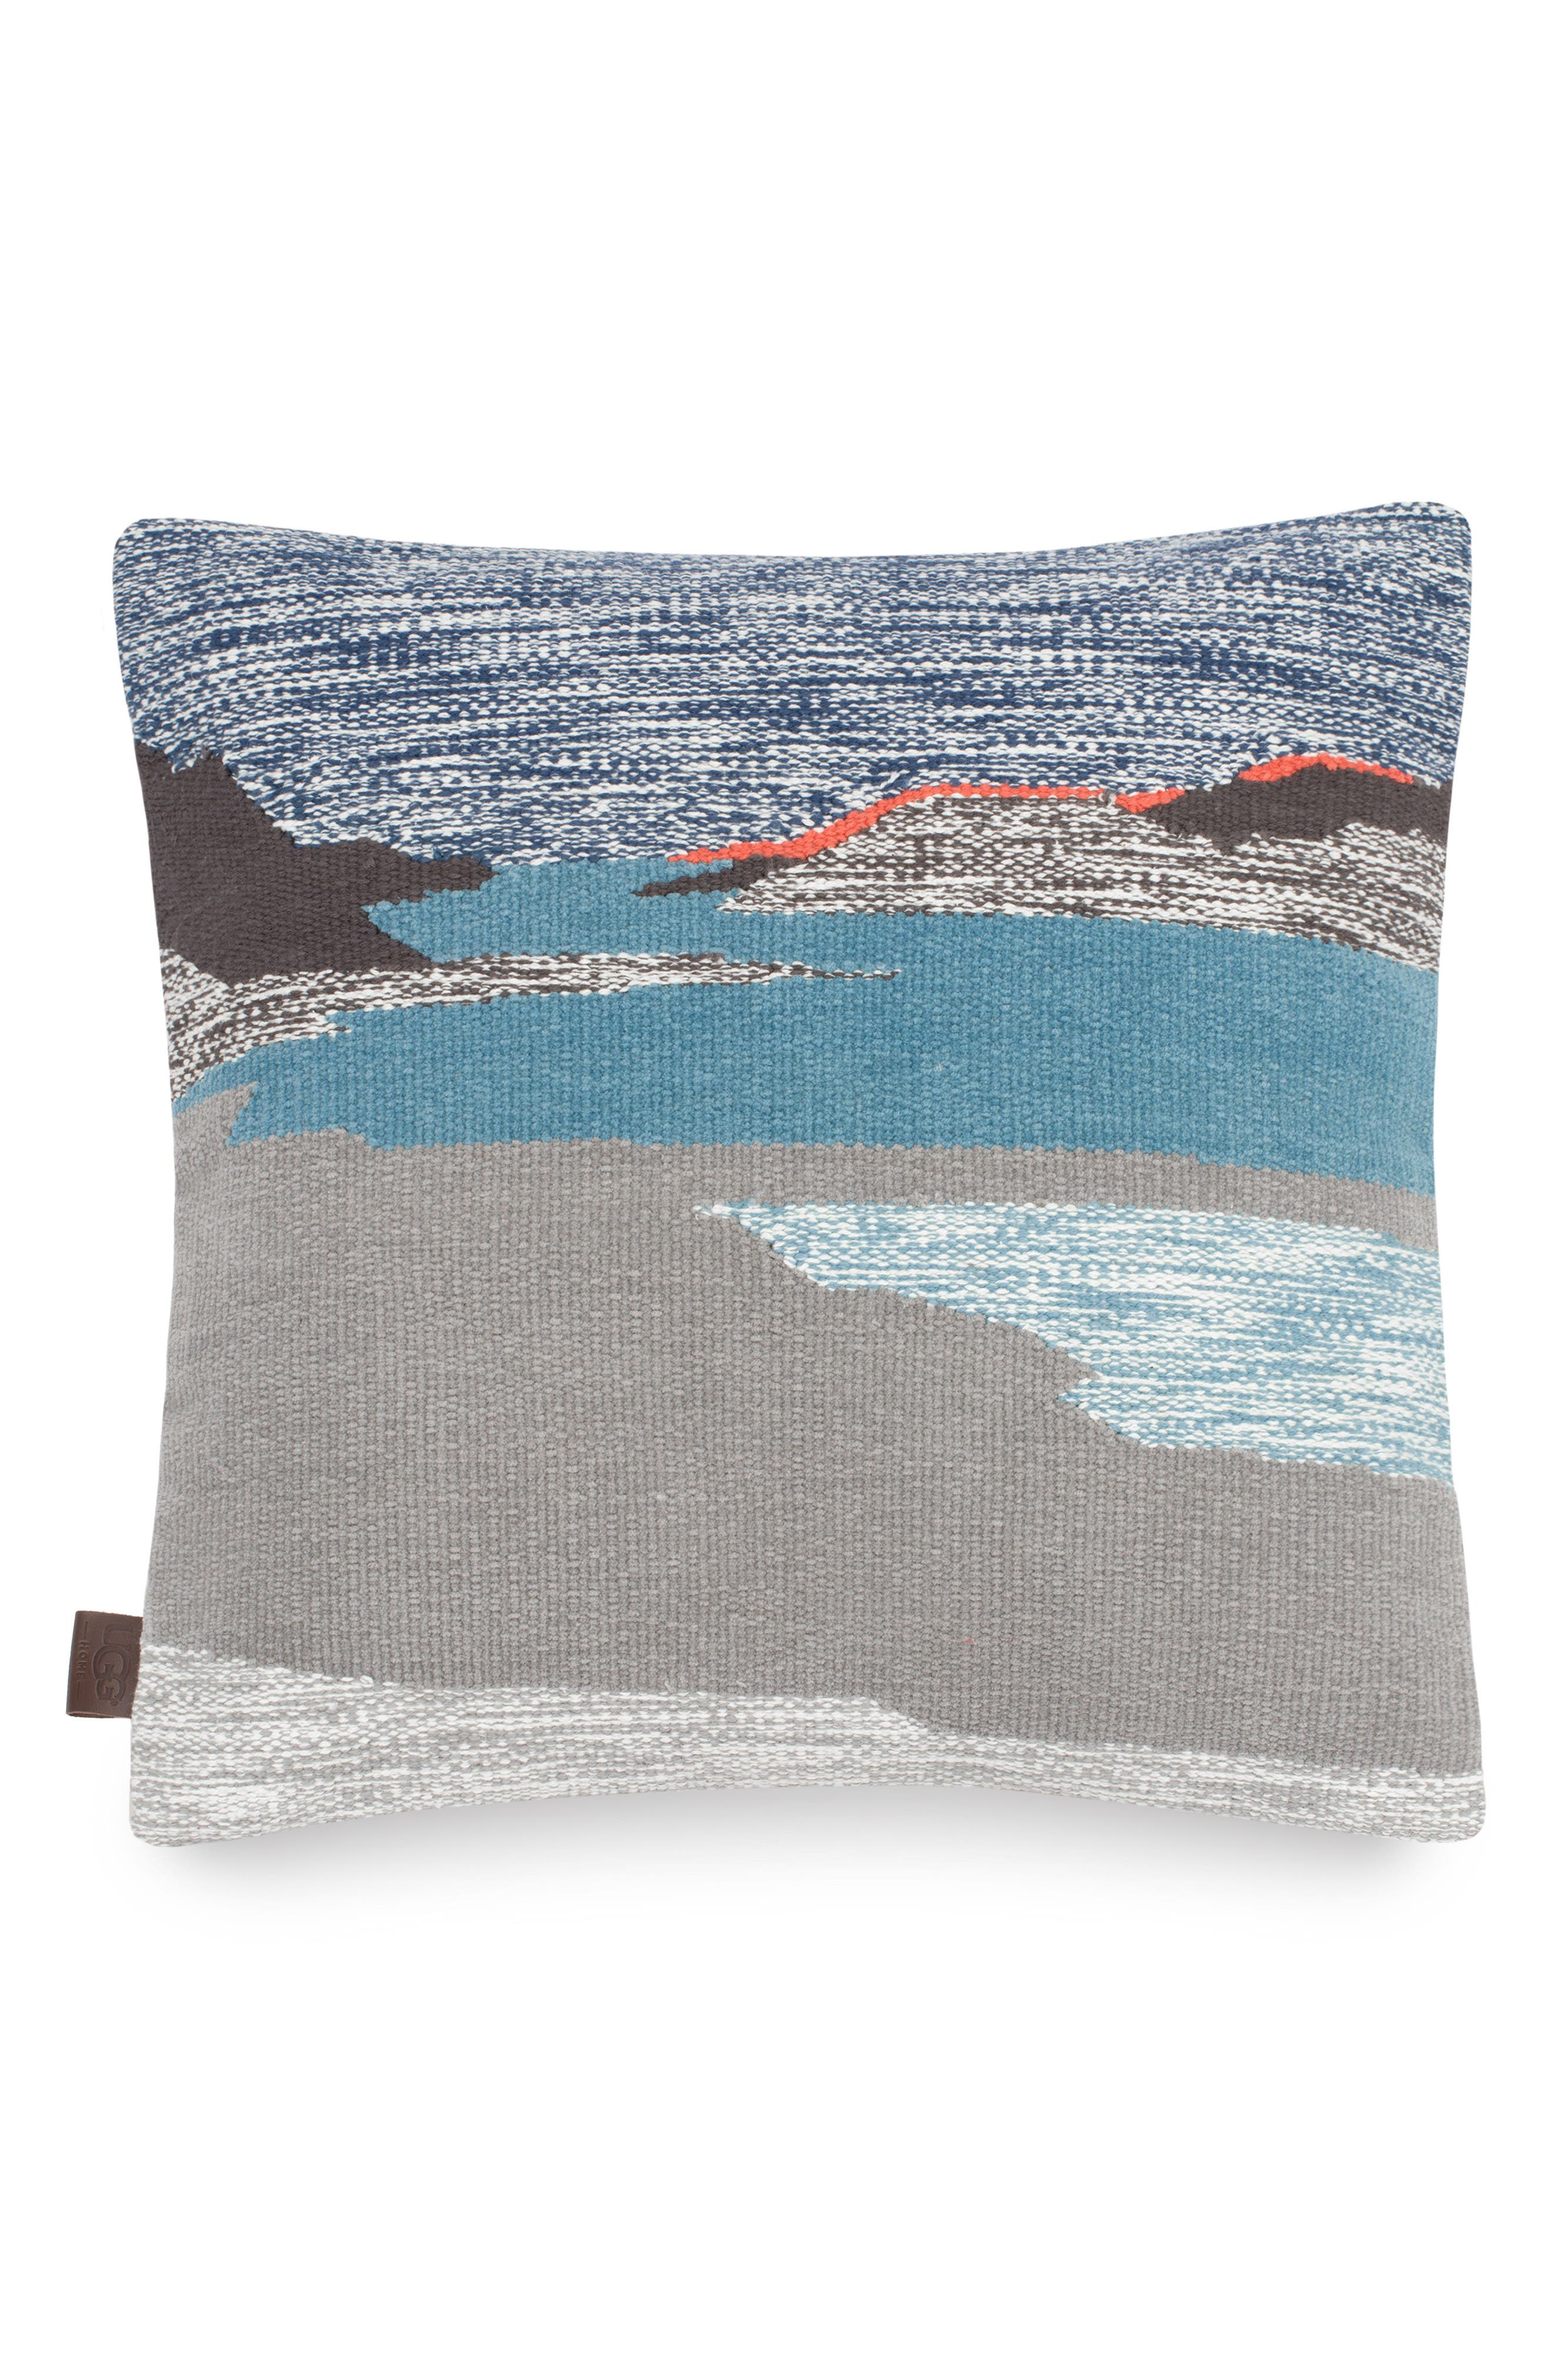 Daydream Landscape Accent Pillow,                         Main,                         color, GREY MULTI